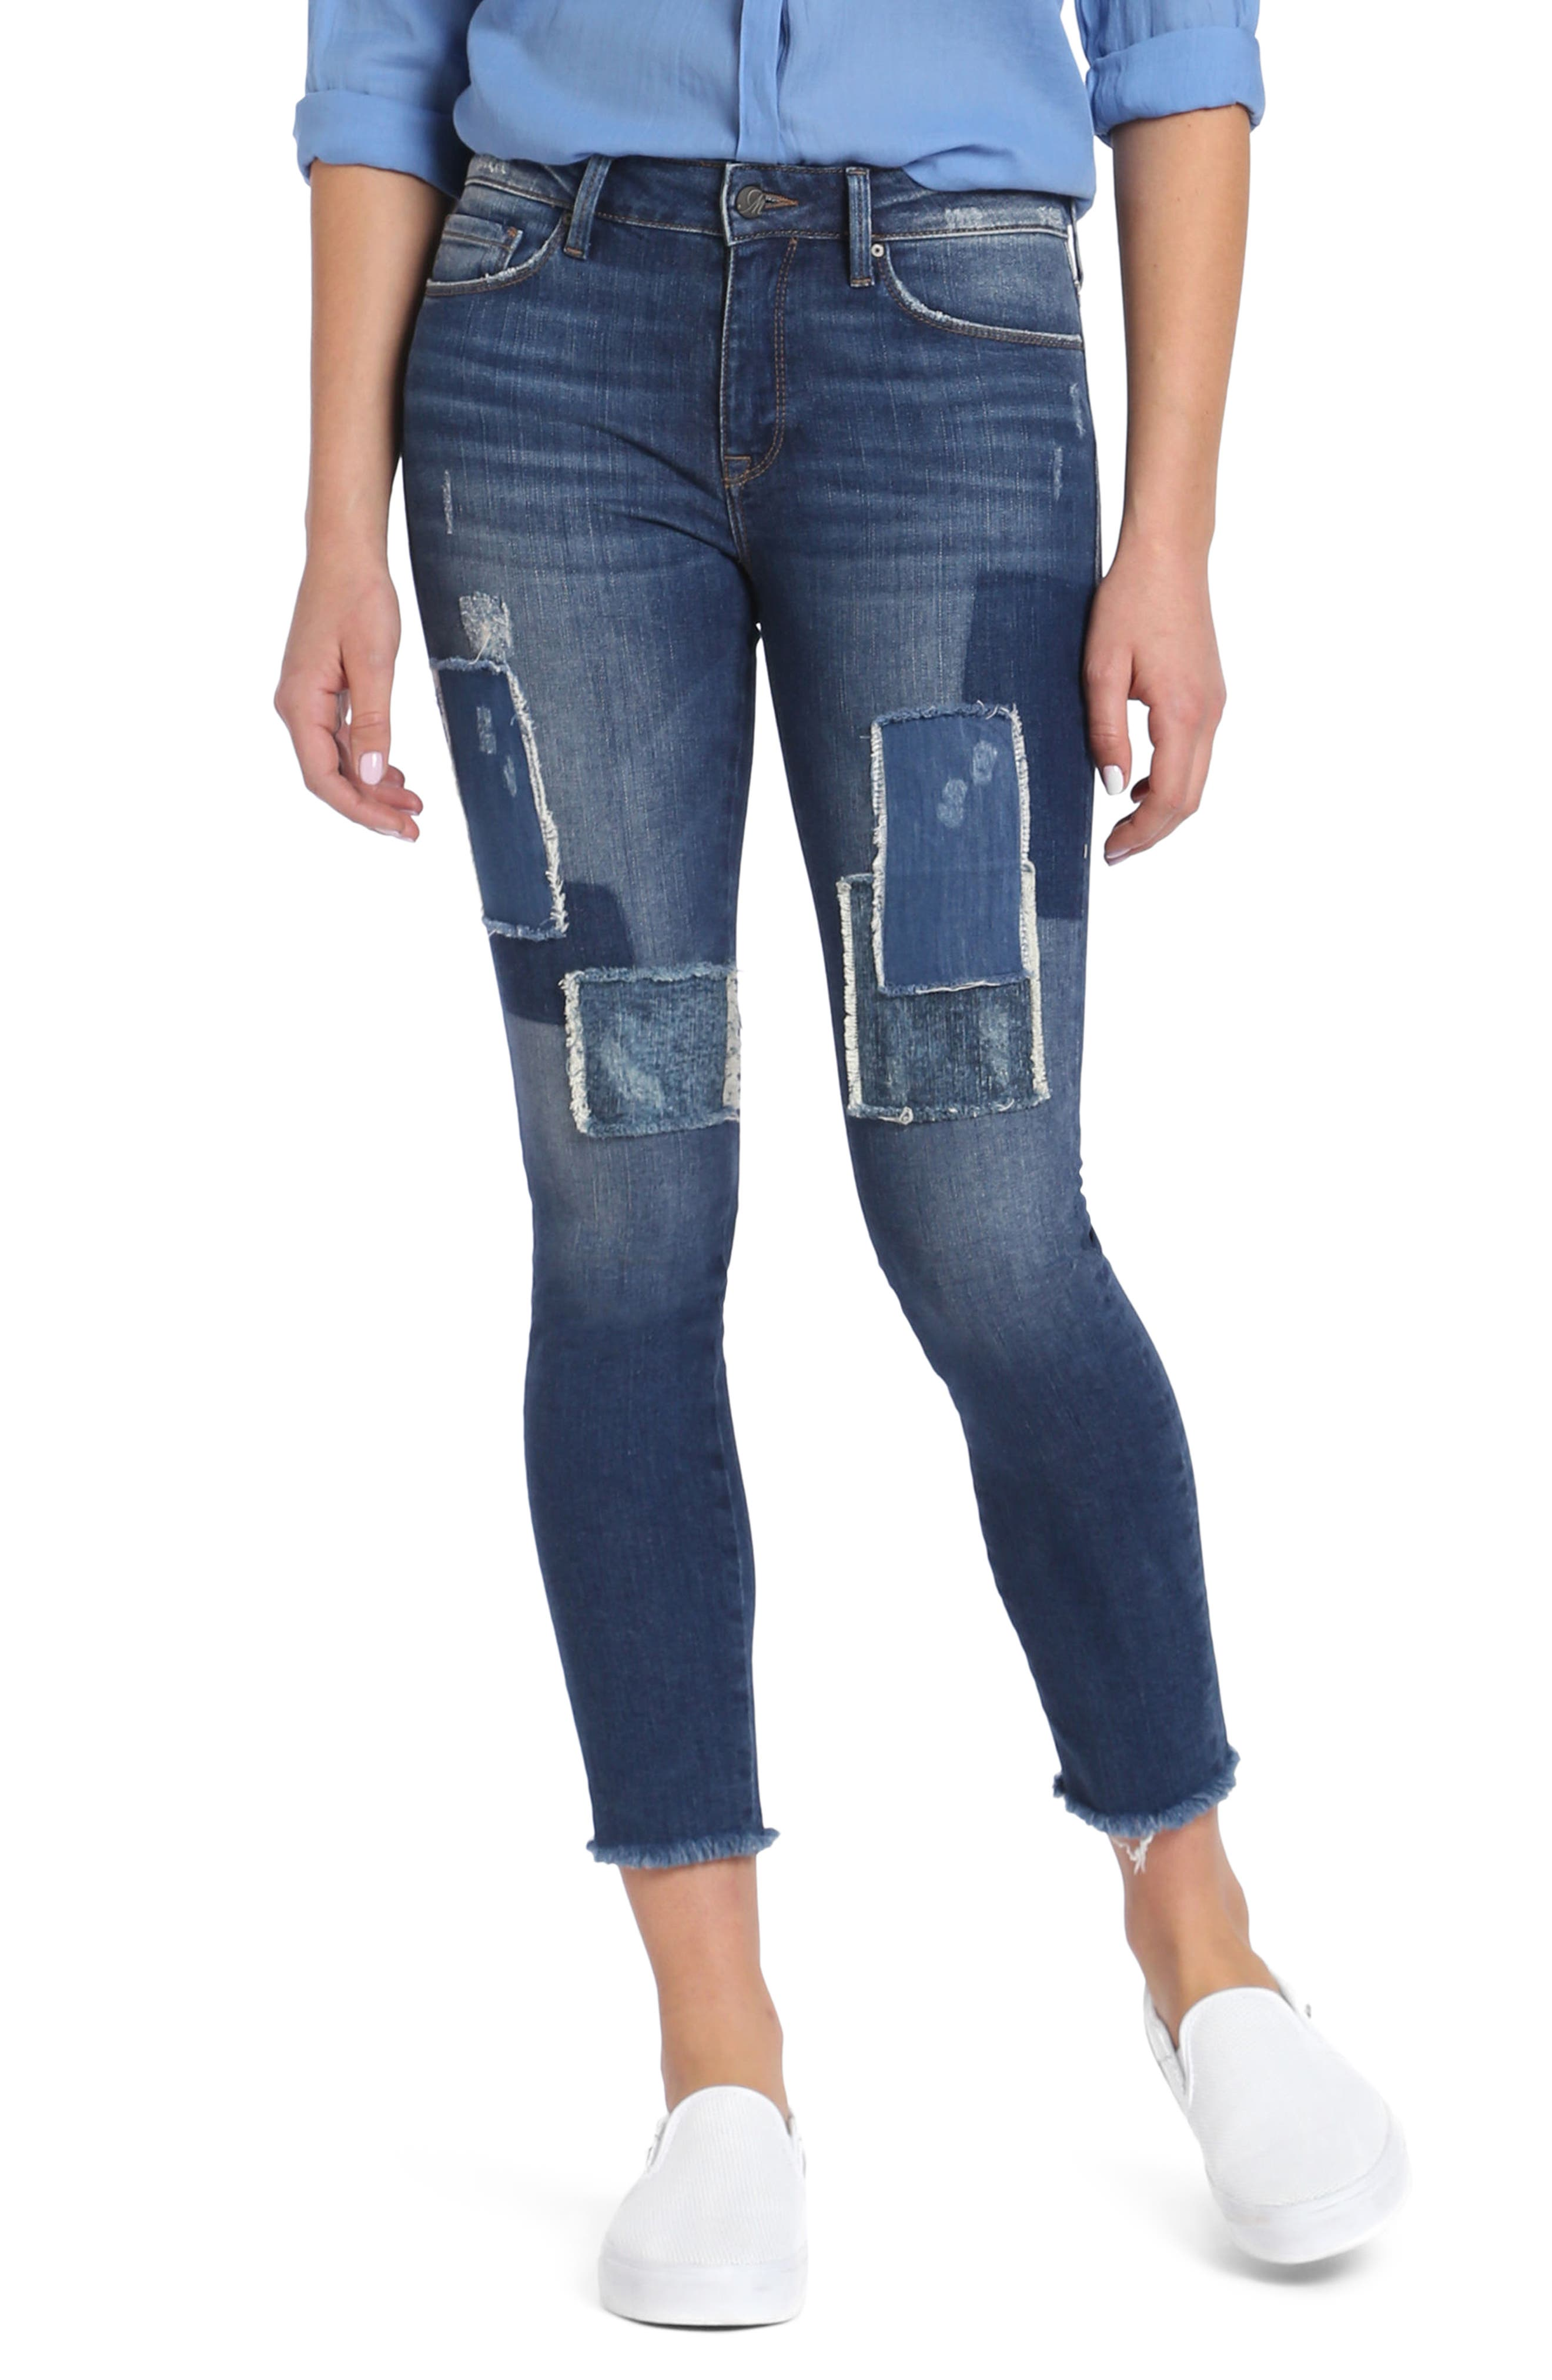 Adriana Patched Stretch Skinny Jeans,                             Main thumbnail 1, color,                             401